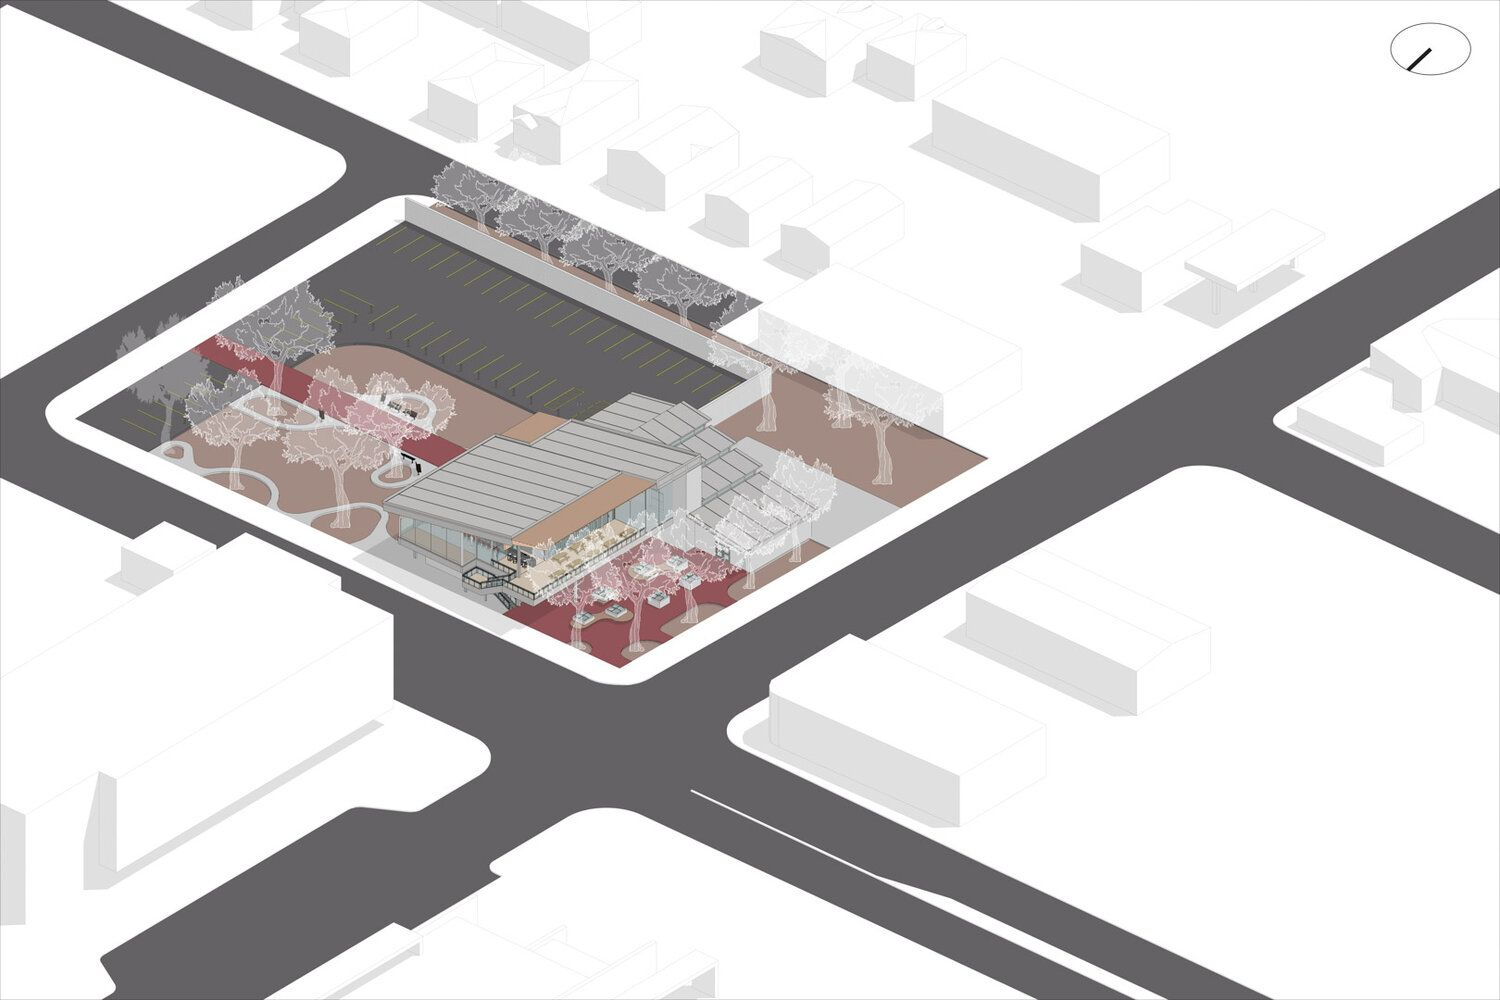 Isometric Building Site Drawing in 2020 | Architecture ...